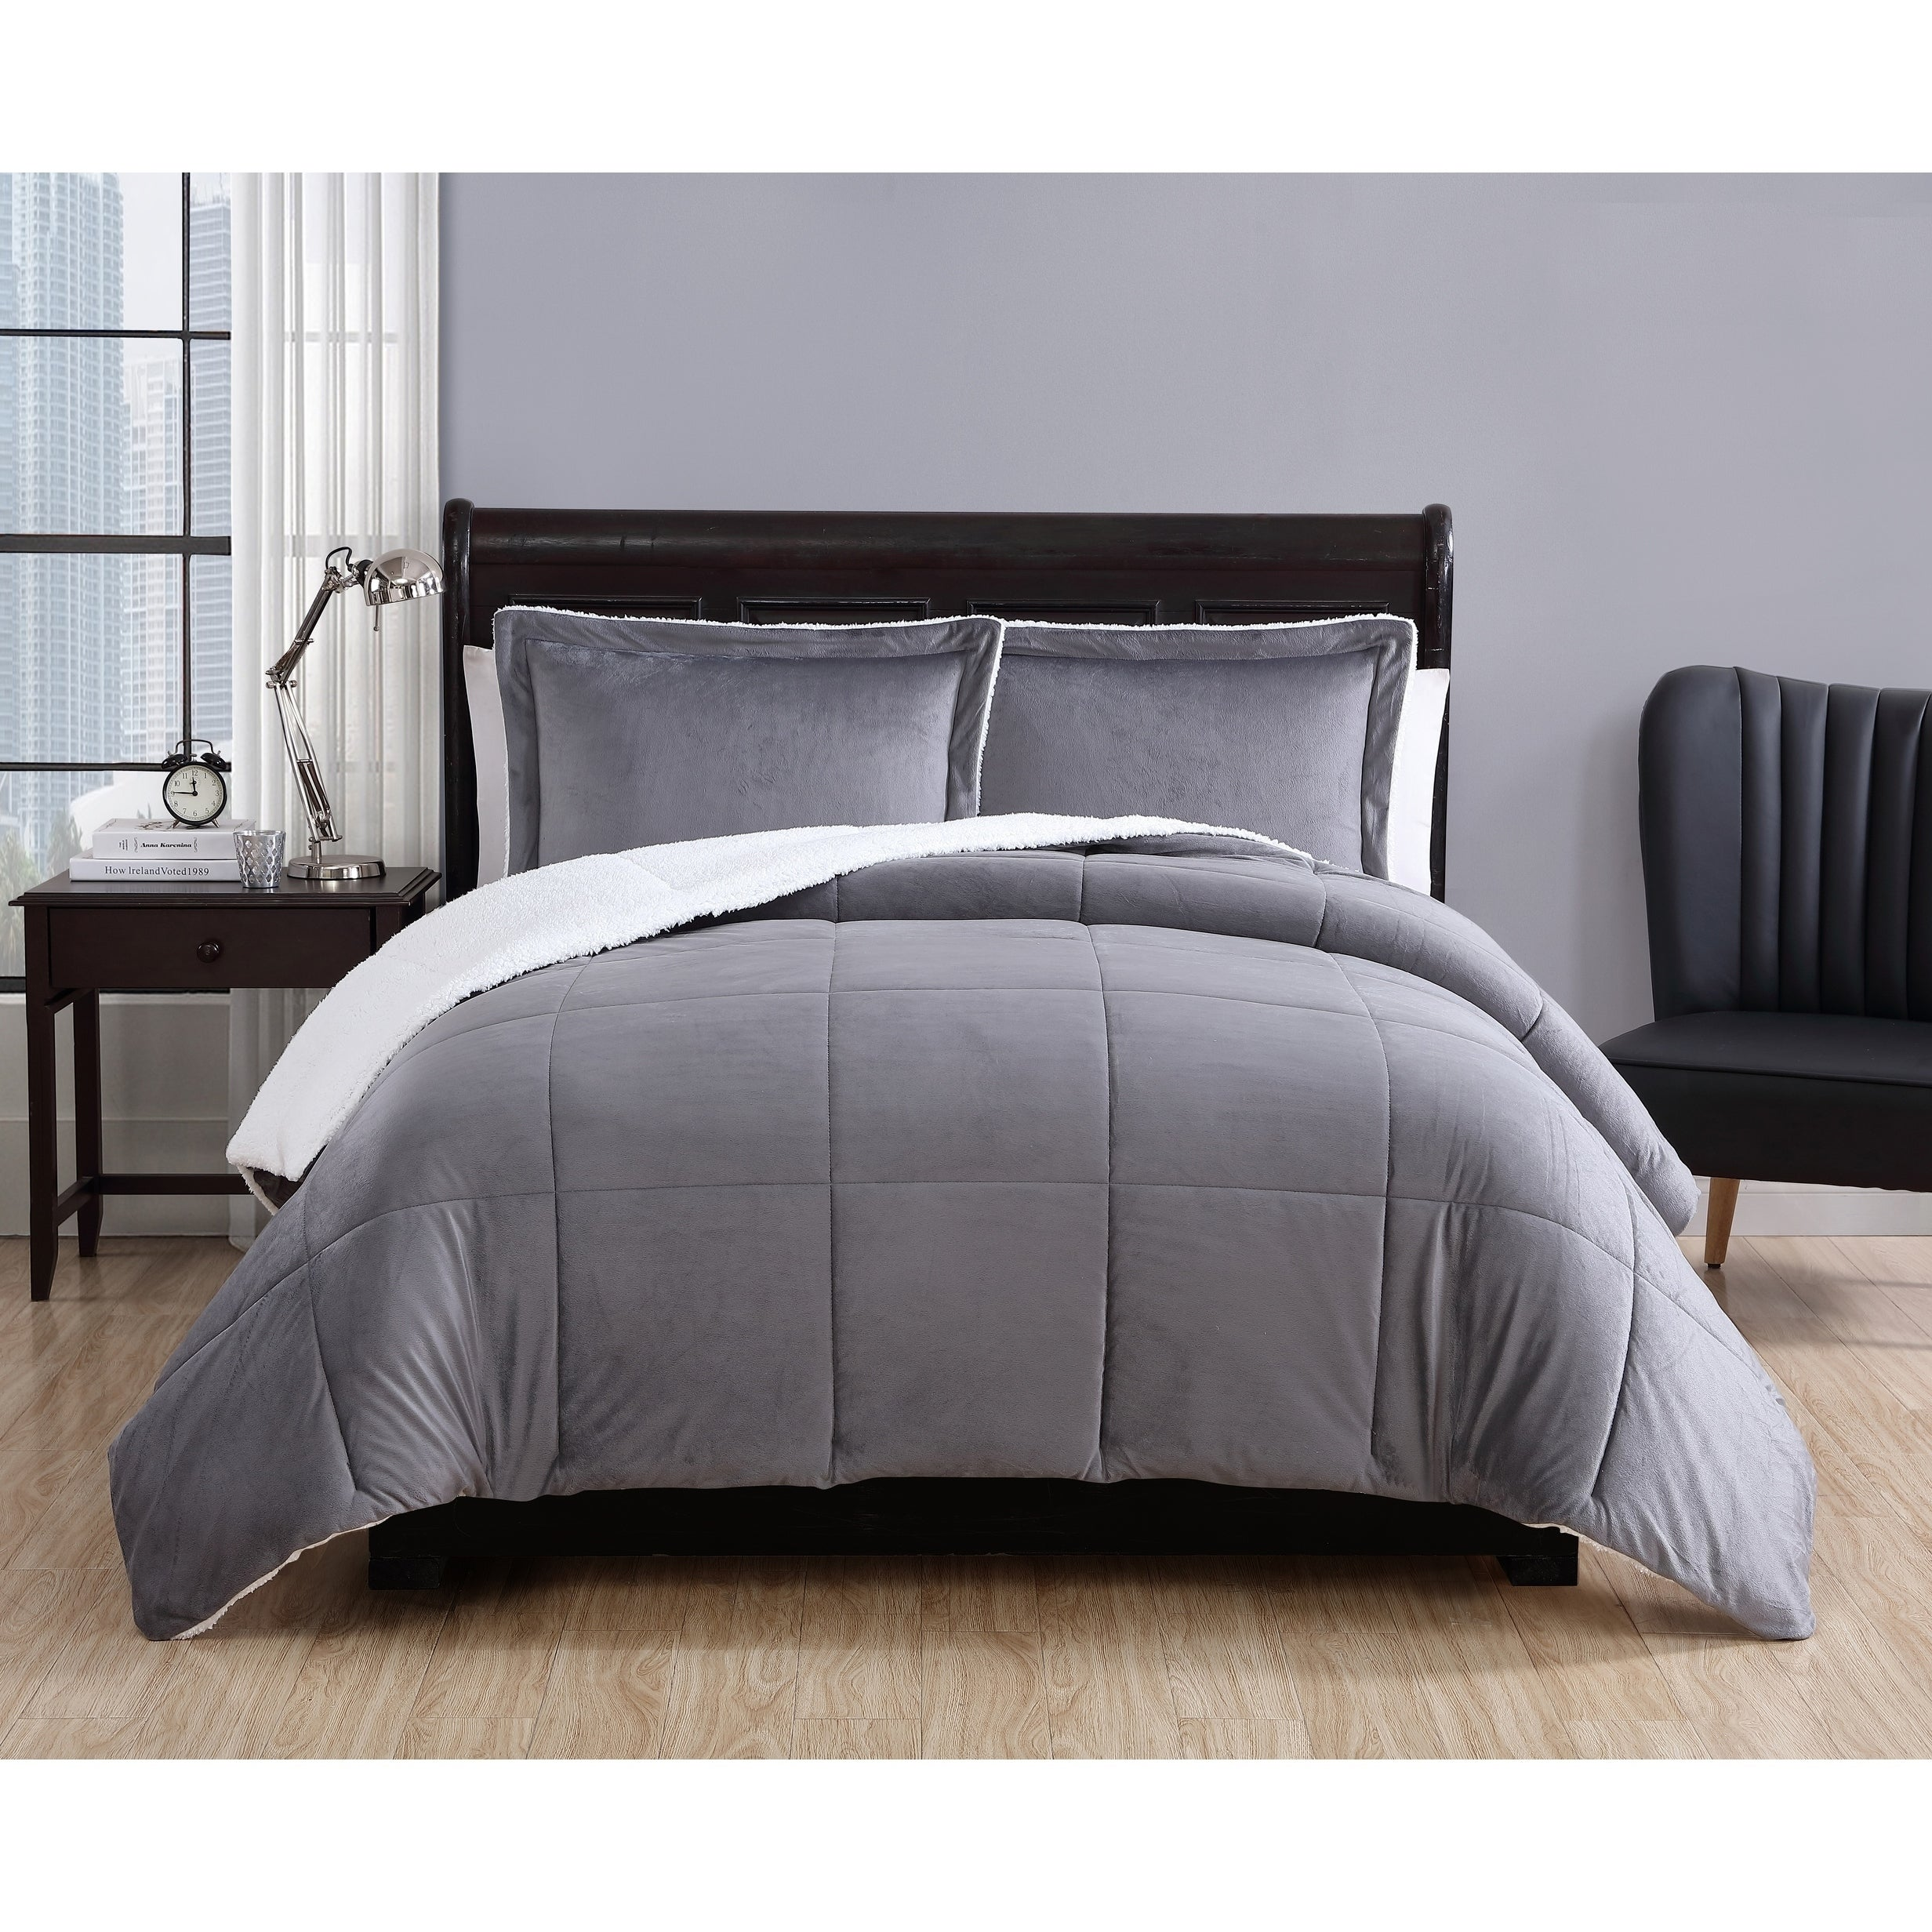 clearance grey geneva blue college sets size comforters target twin for bed queen queens guys girls set comforter walmart micro croscill online lovely bedding pillows beyond suede bath and